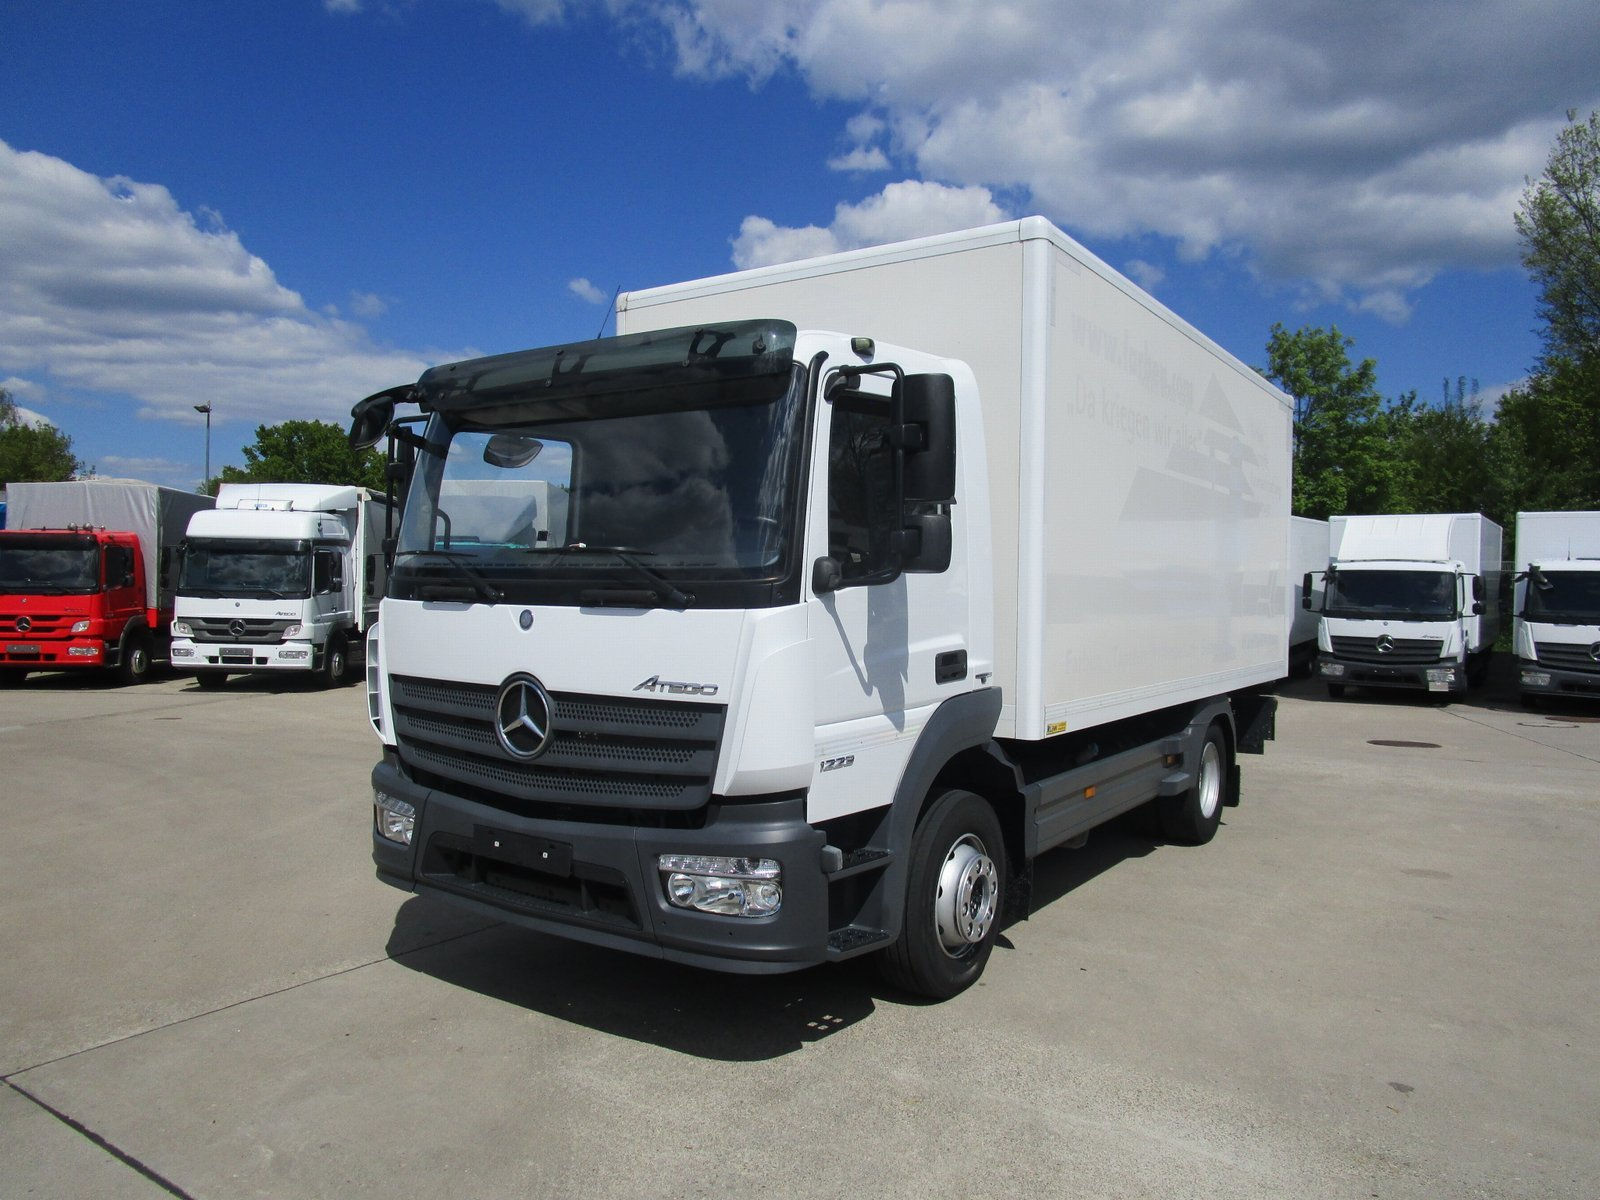 ATEGO IV 1223 L Koffer 5,20 m LBW 1,25 to.